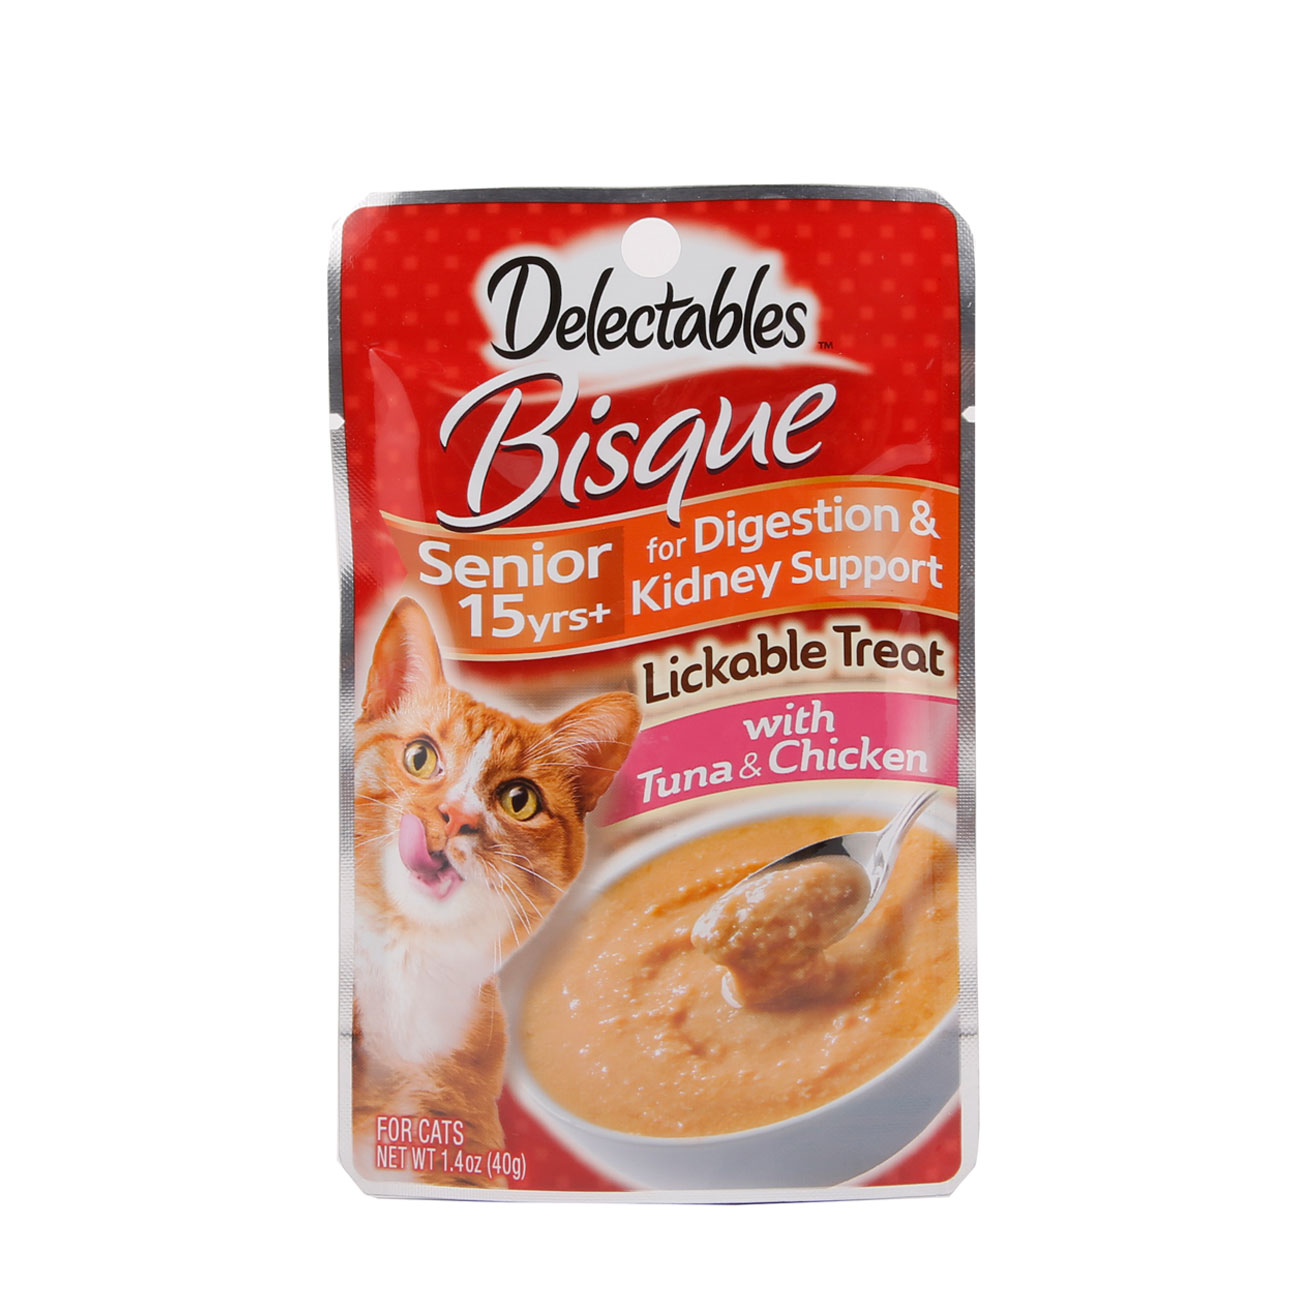 Front of Hartz Delectable Lickable Treat Bisque Tuna and Chicken for Senior Cats package. Delectable Lickable Treat is a senior cat treat.